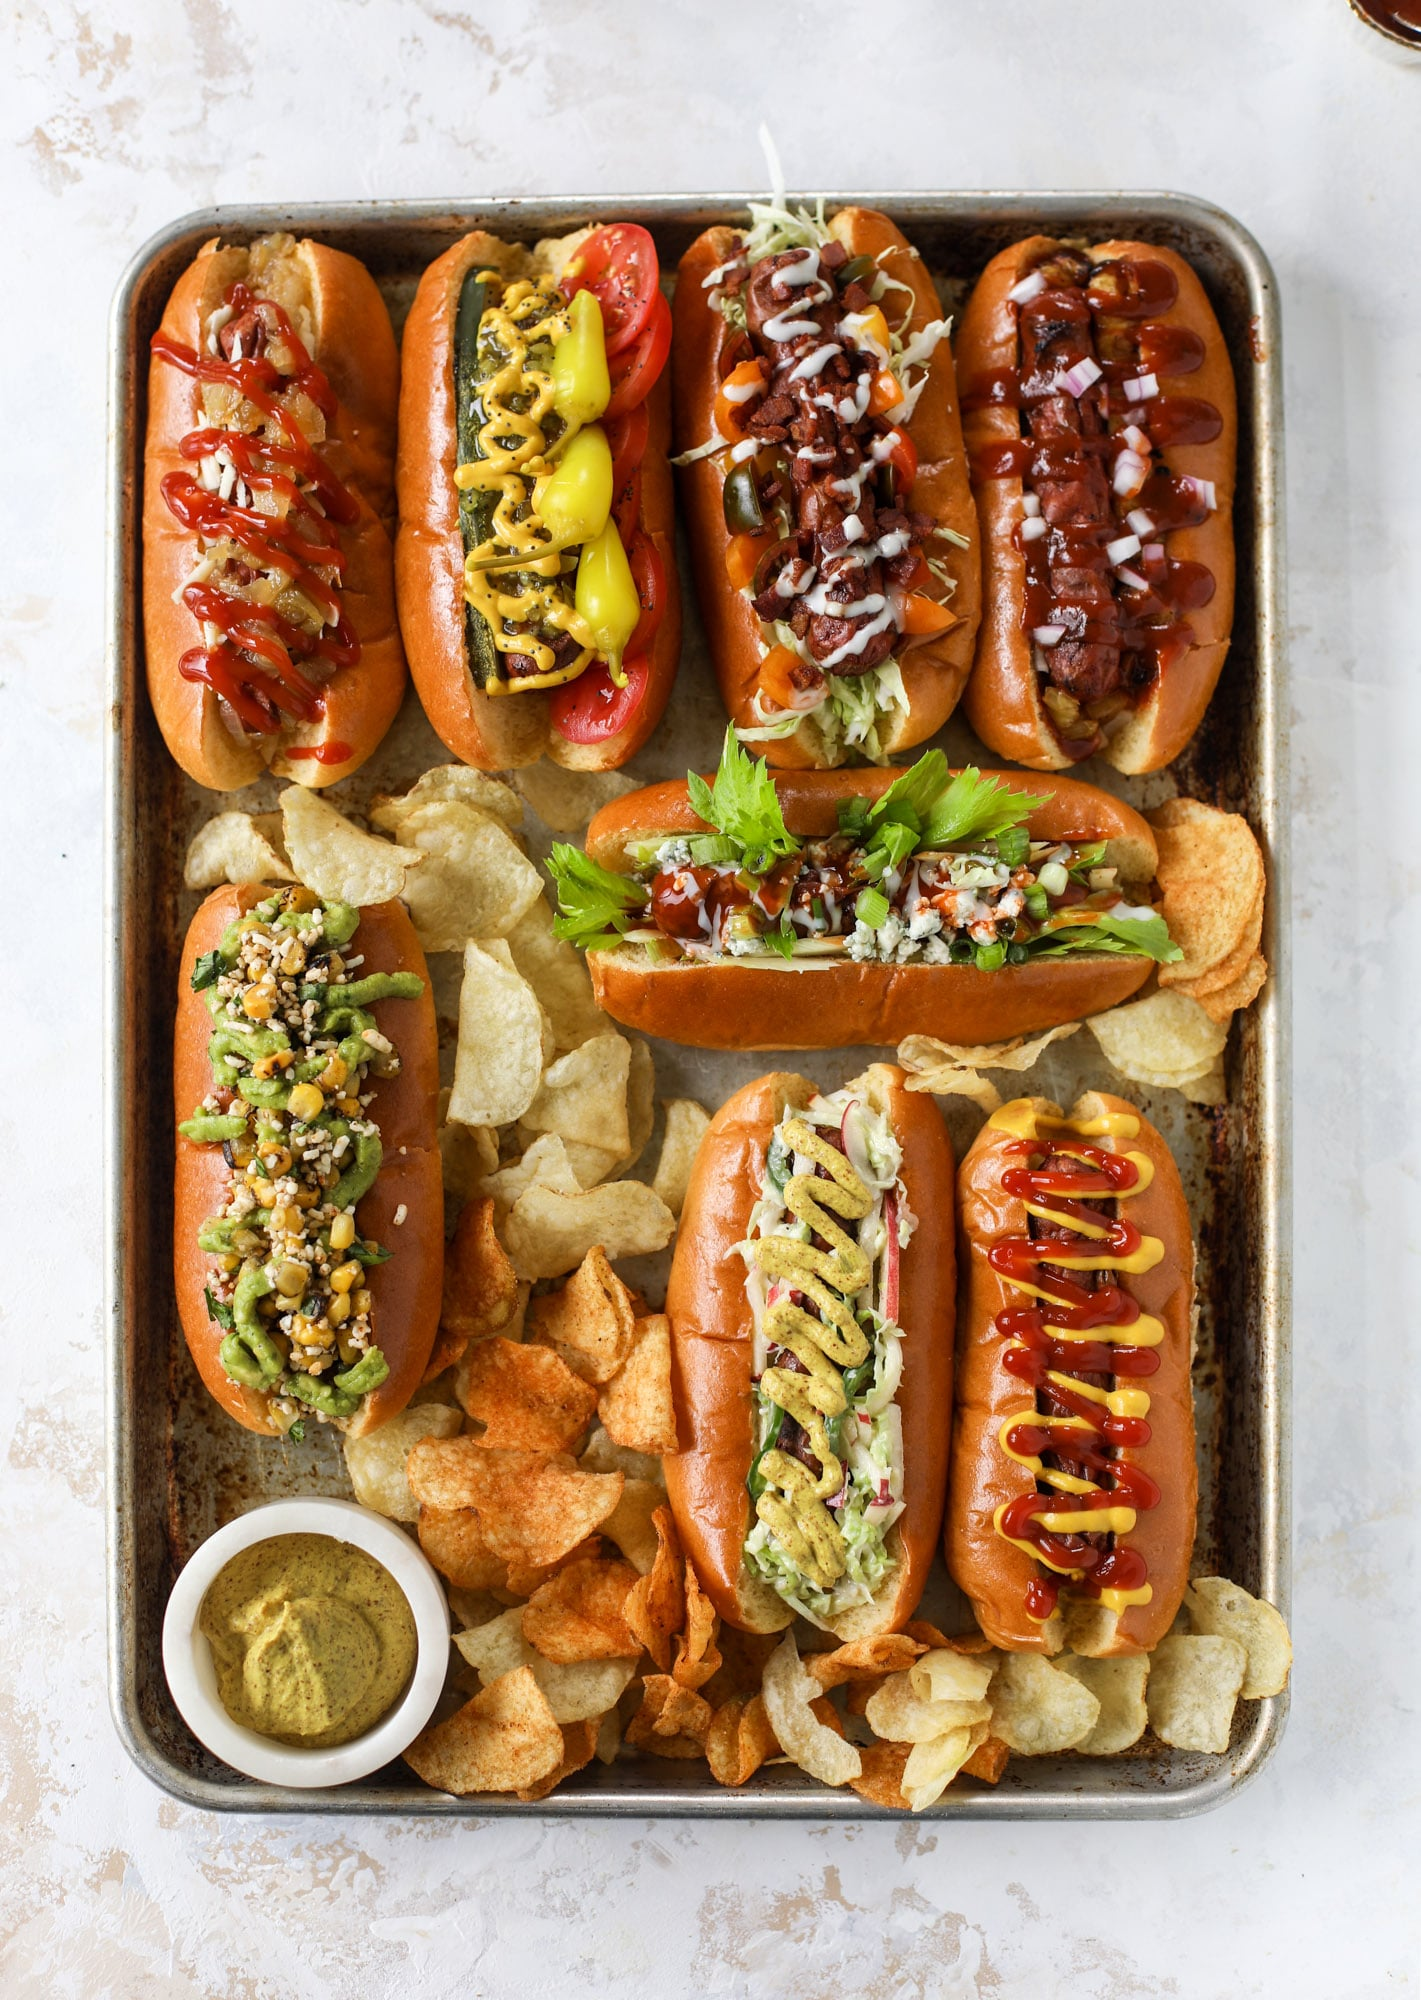 Nothing screams summer more than a hot dog bar! Grab your buns and dogs and a whole lot of toppings. This is super fun and delicious!